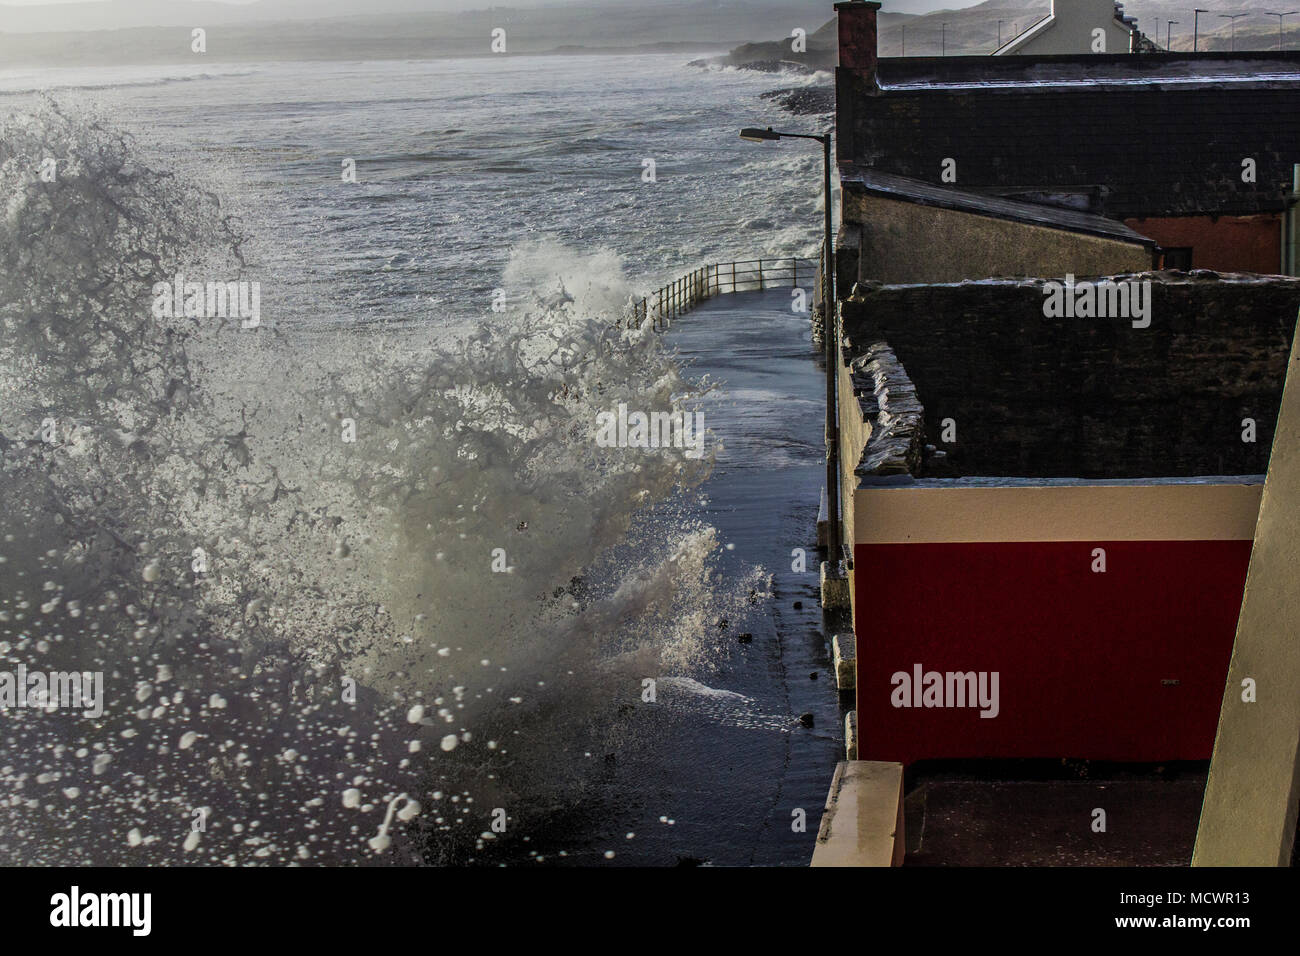 Wave coming over promenade in Lahinch at high tide - Stock Image